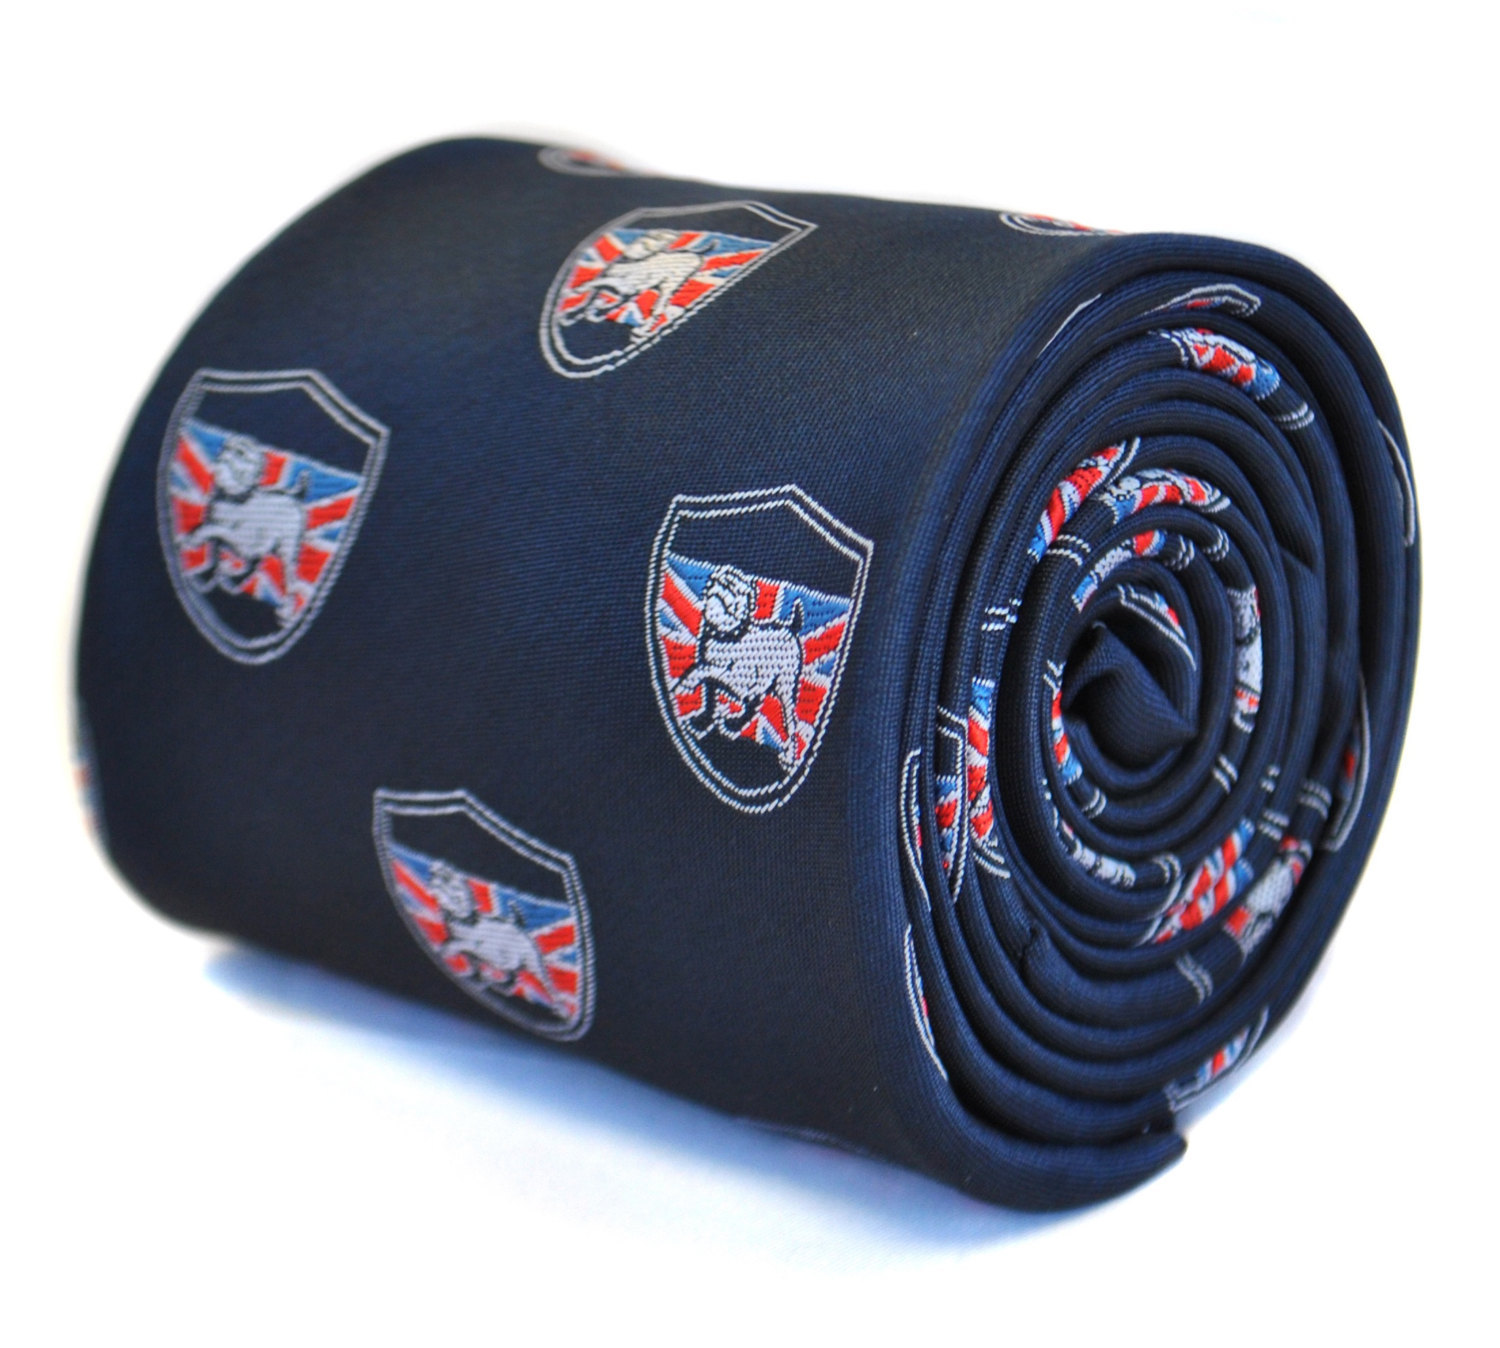 navy blue tie with british bulldog and flag crest design with signature floral d